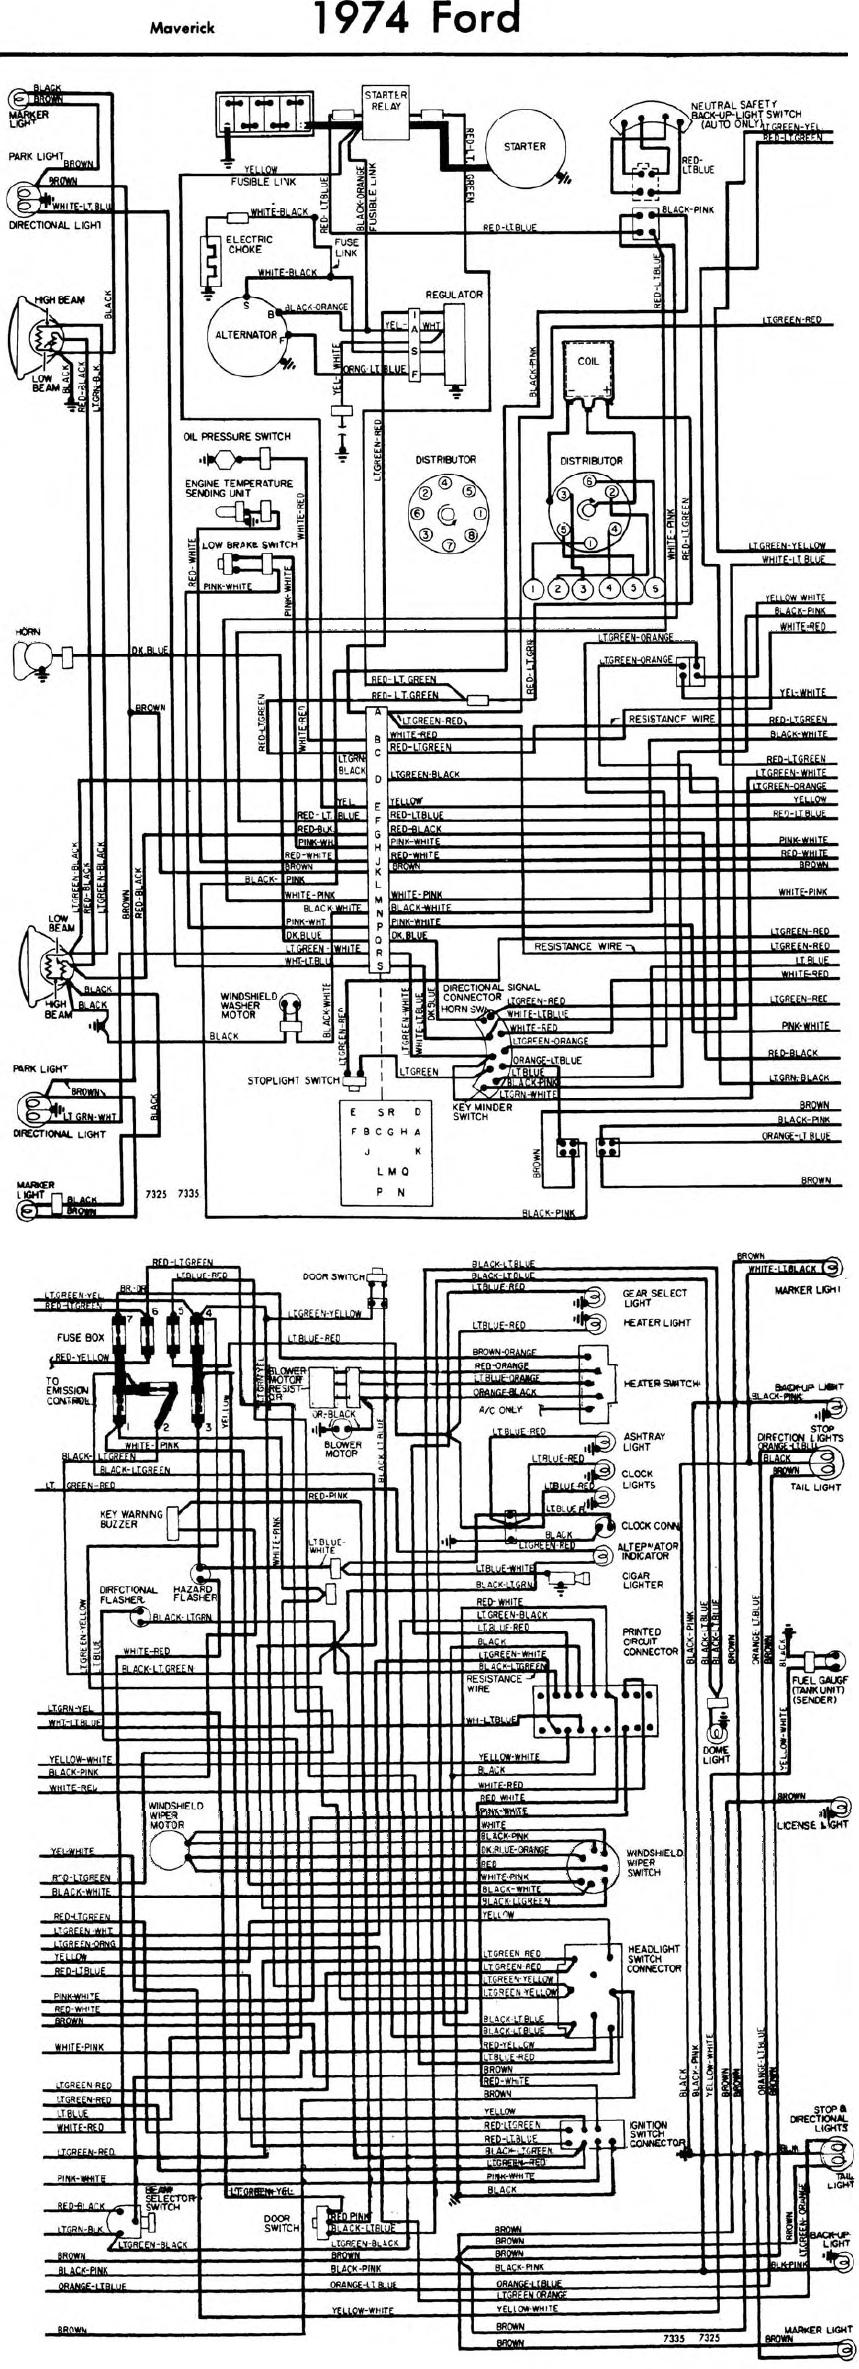 1970 Ford Maverick Fuse Box Another Wiring Diagrams 1969 Diagram Great Design Of U2022 Rh Homewerk Co 1971